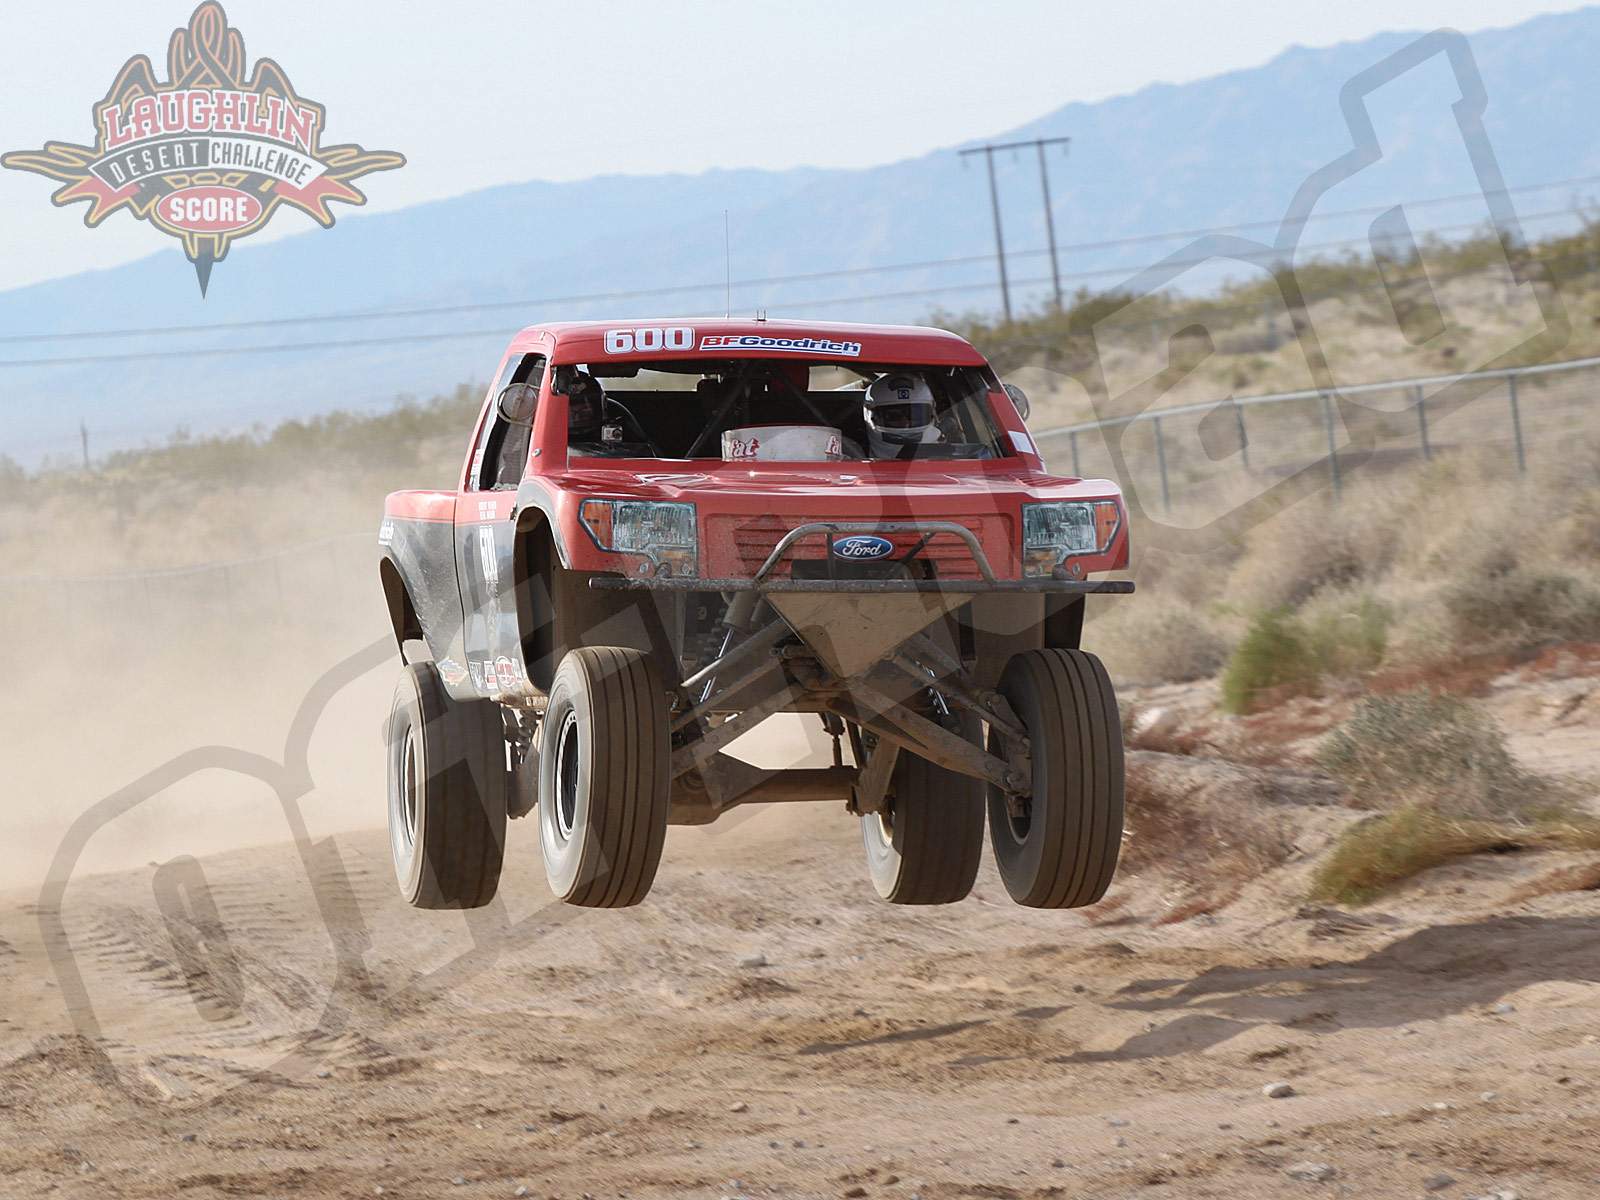 012011or 6595+2011 score laughlin desert challenge+truck classes